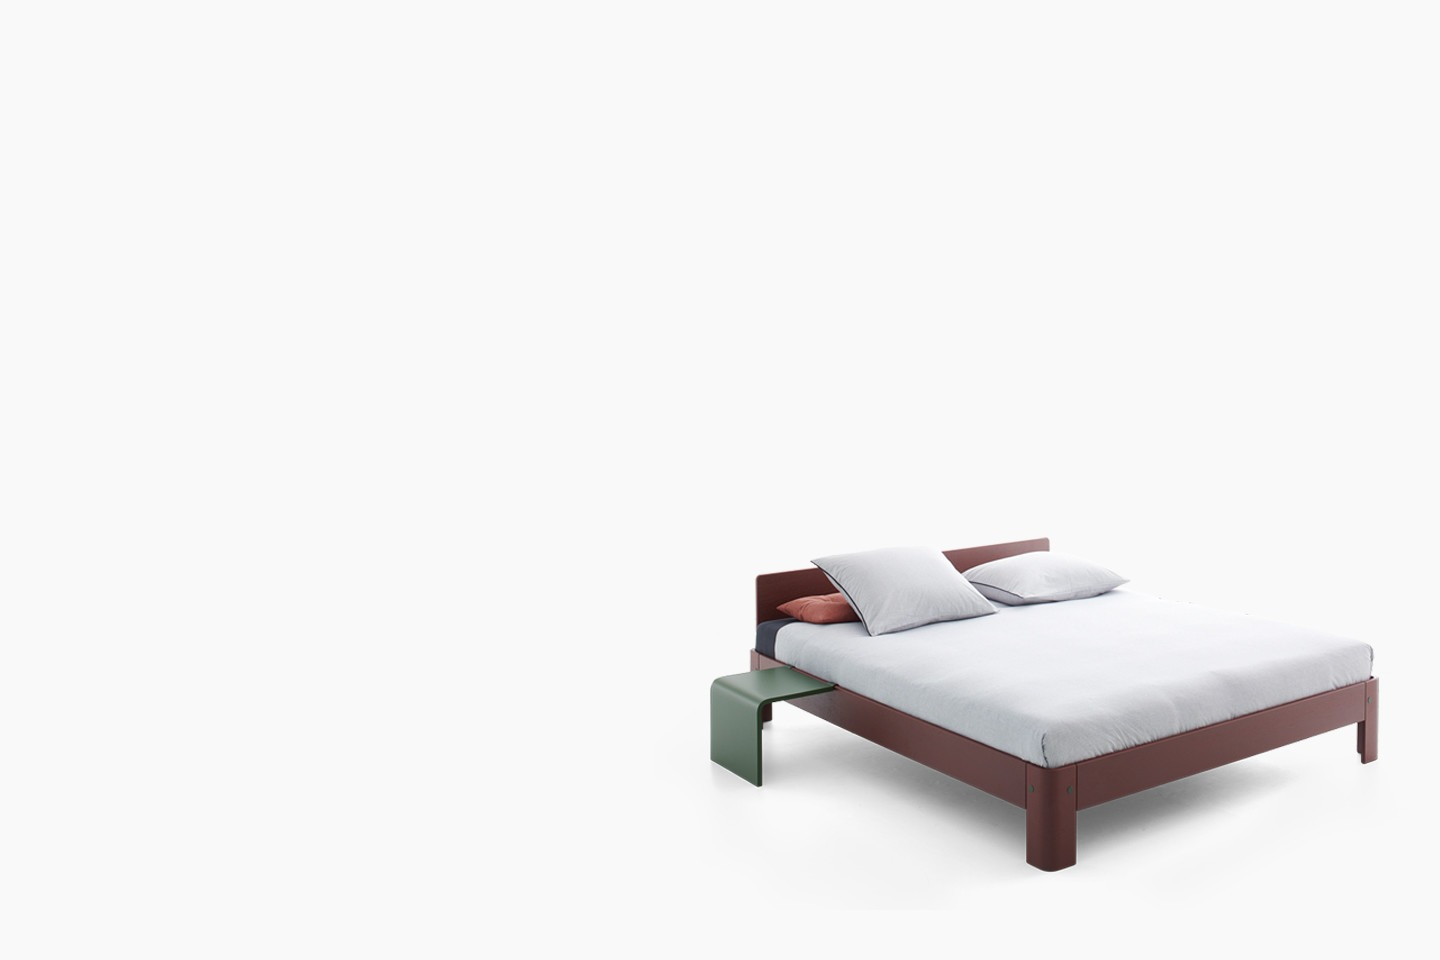 auronde bed amsterdam auping